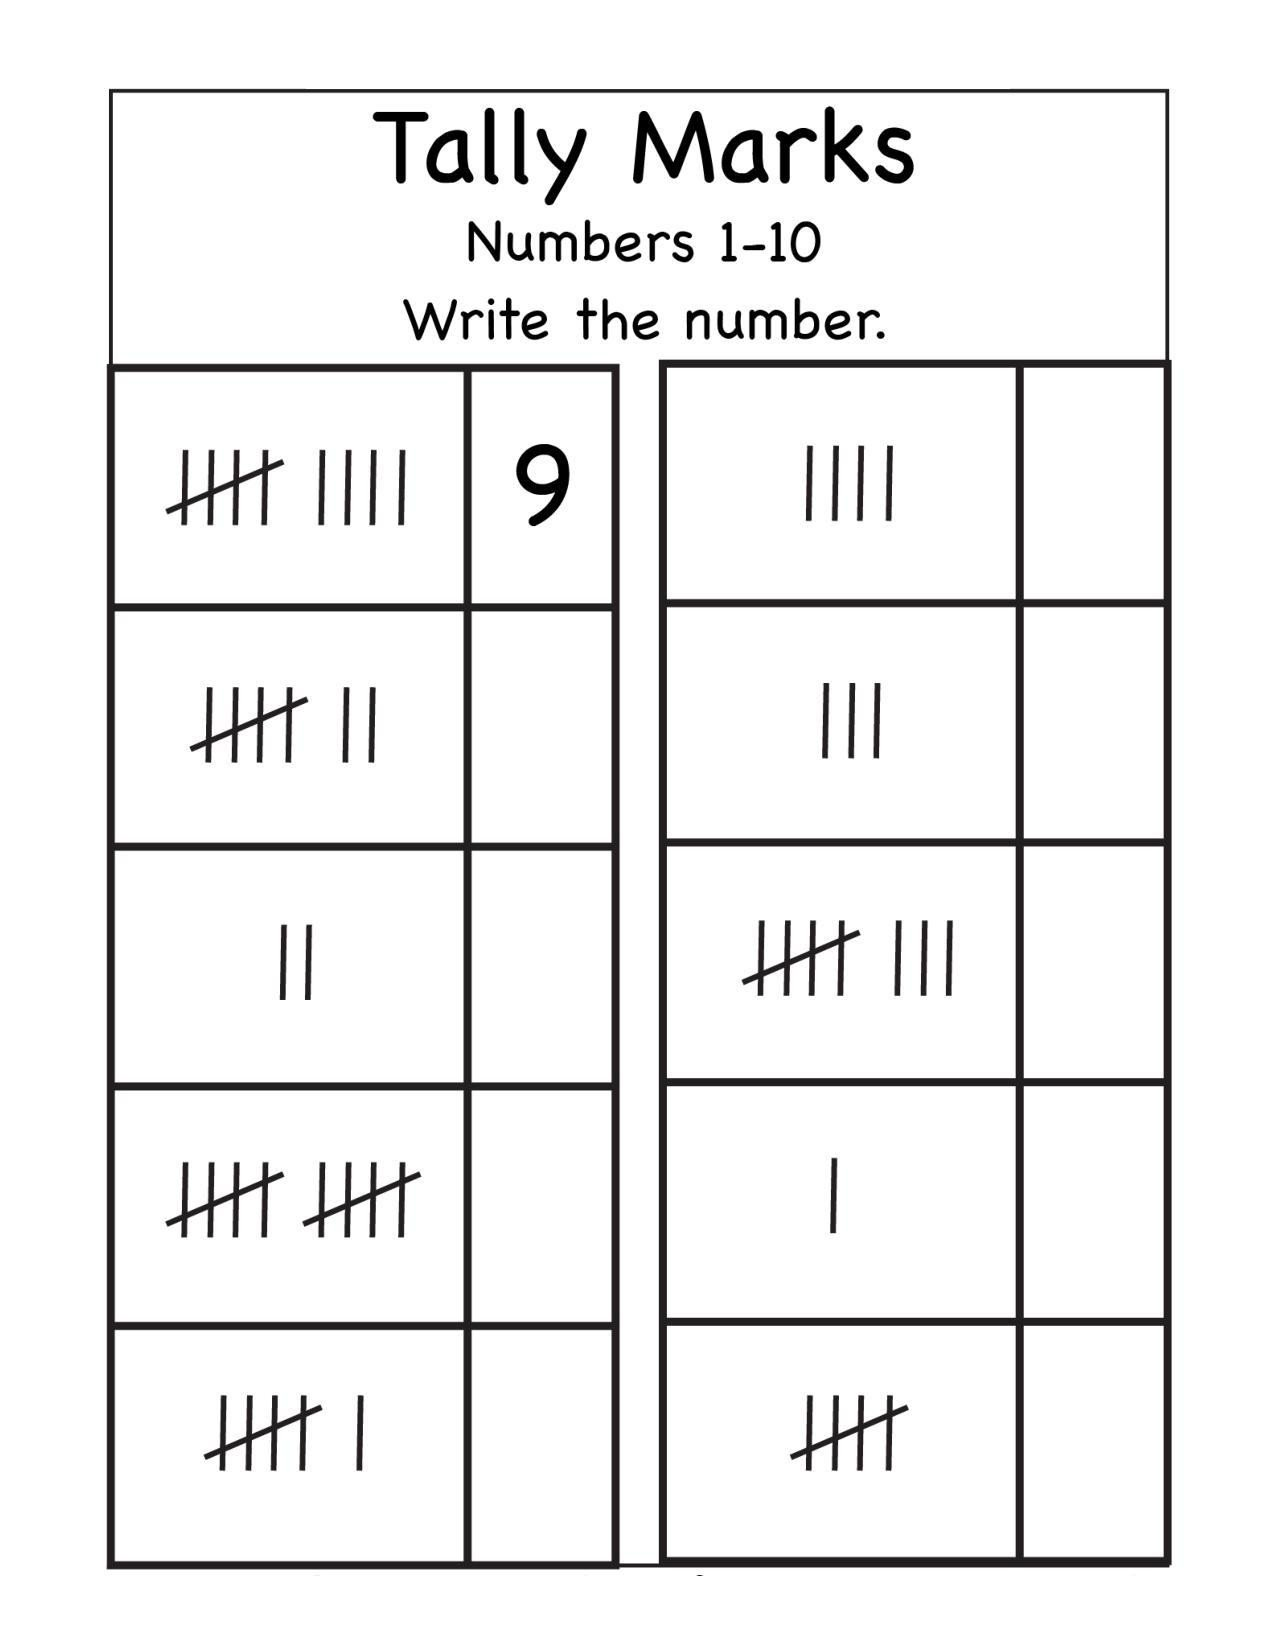 wfun15 tally marks number 2 page 001